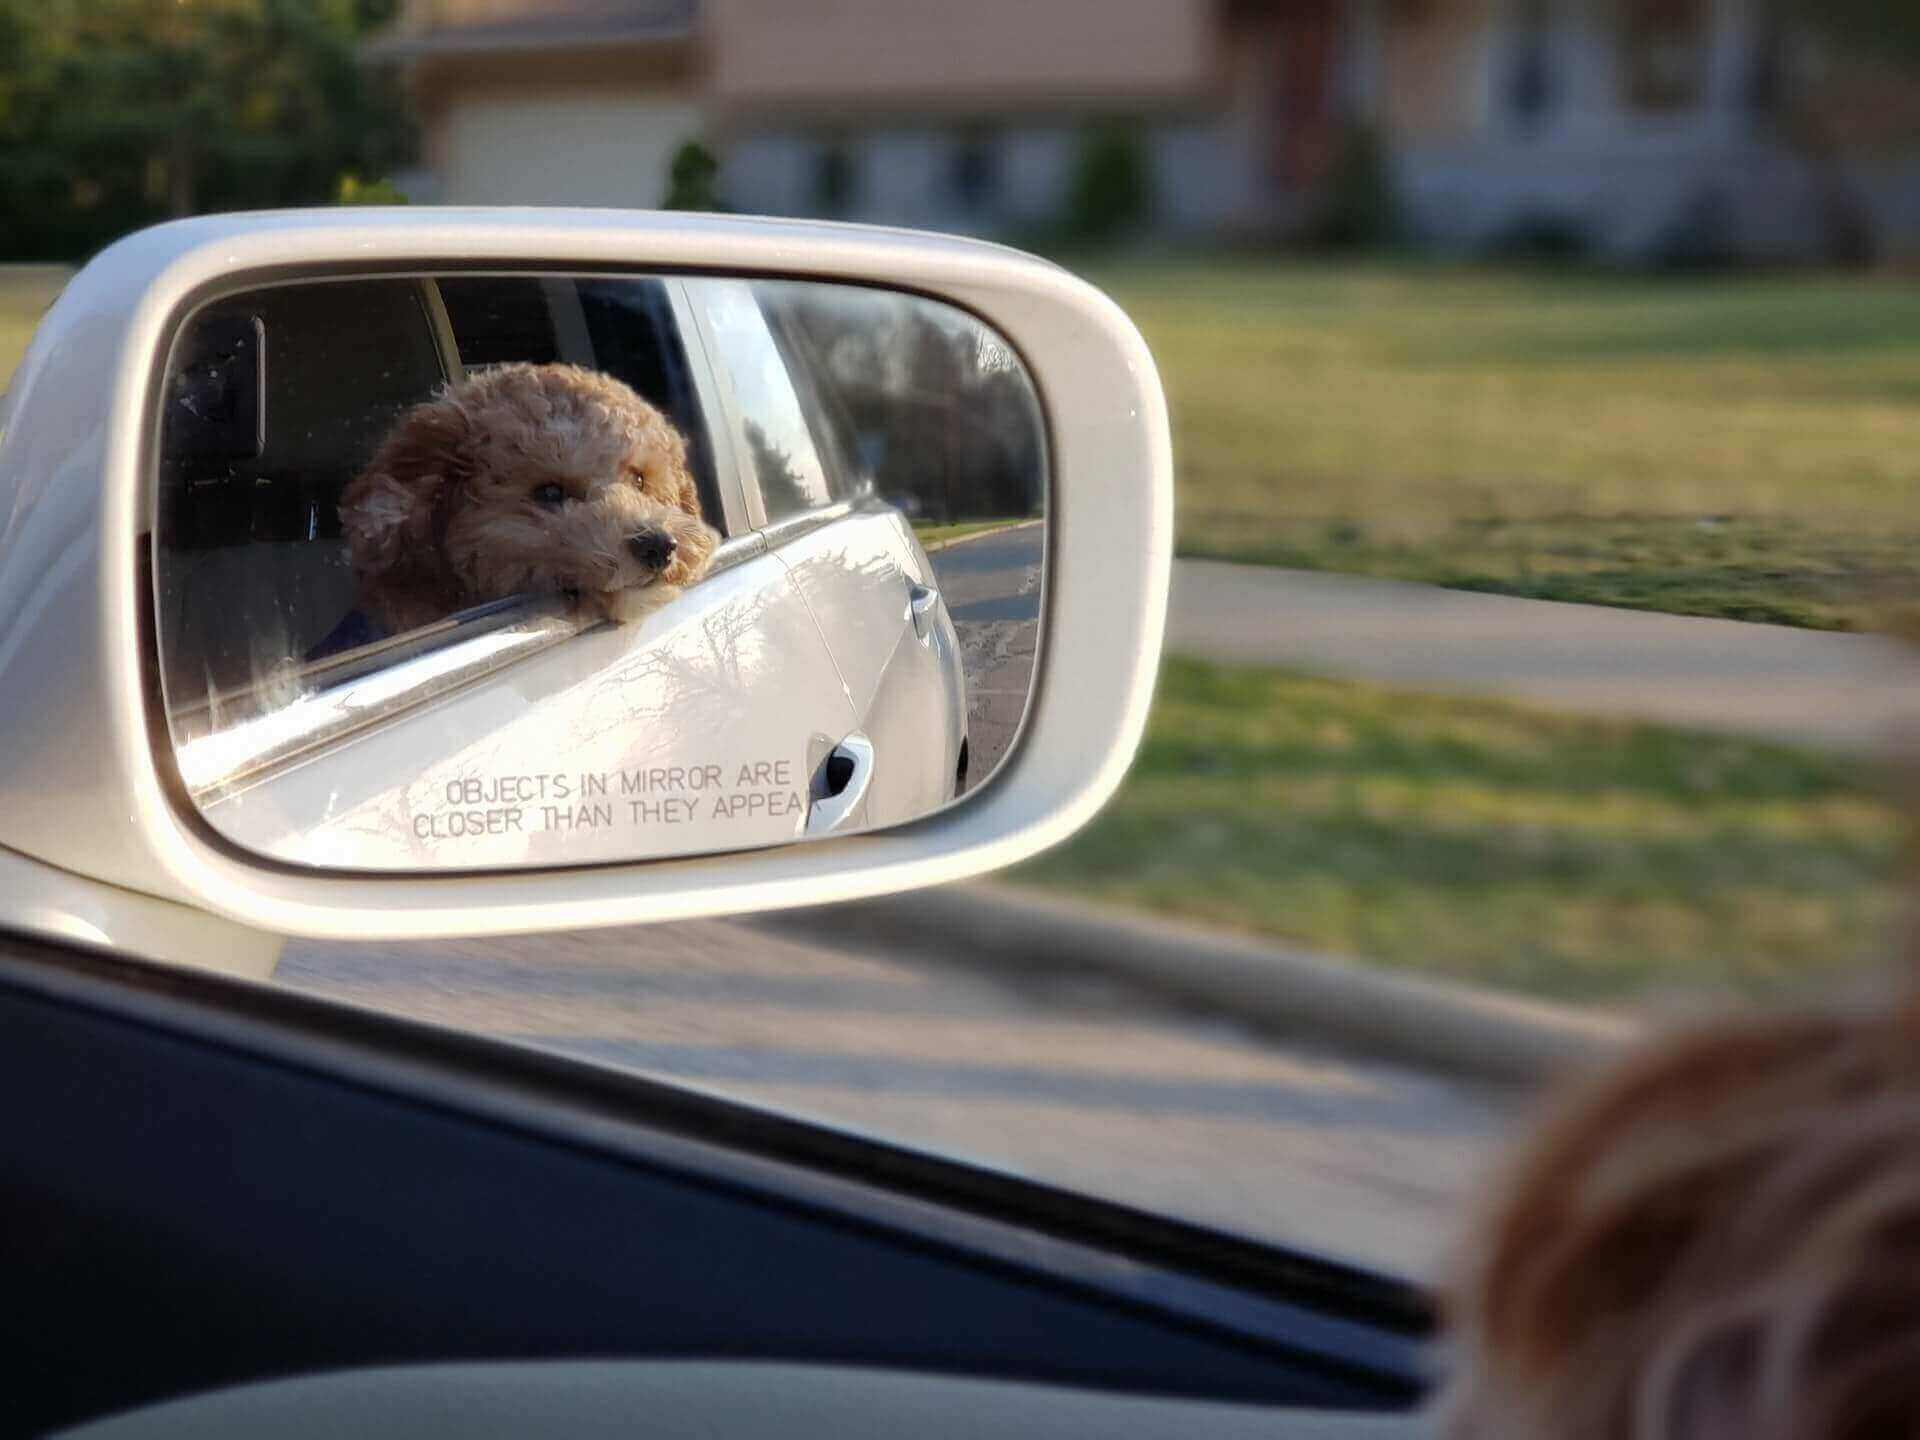 How to use seat belt for dog in car